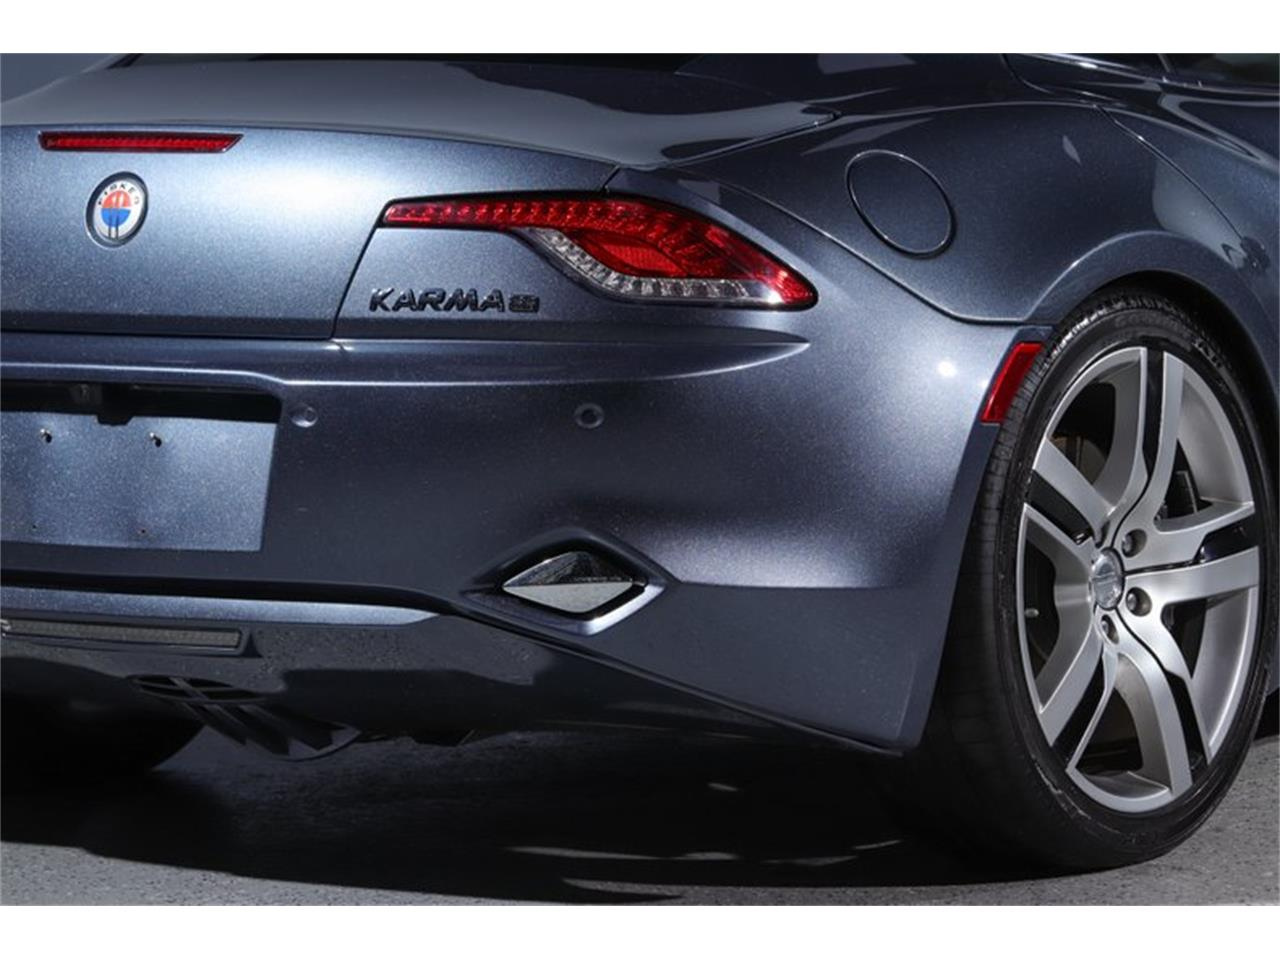 2012 Fisker Karma for sale in New Hyde Park, NY – photo 18